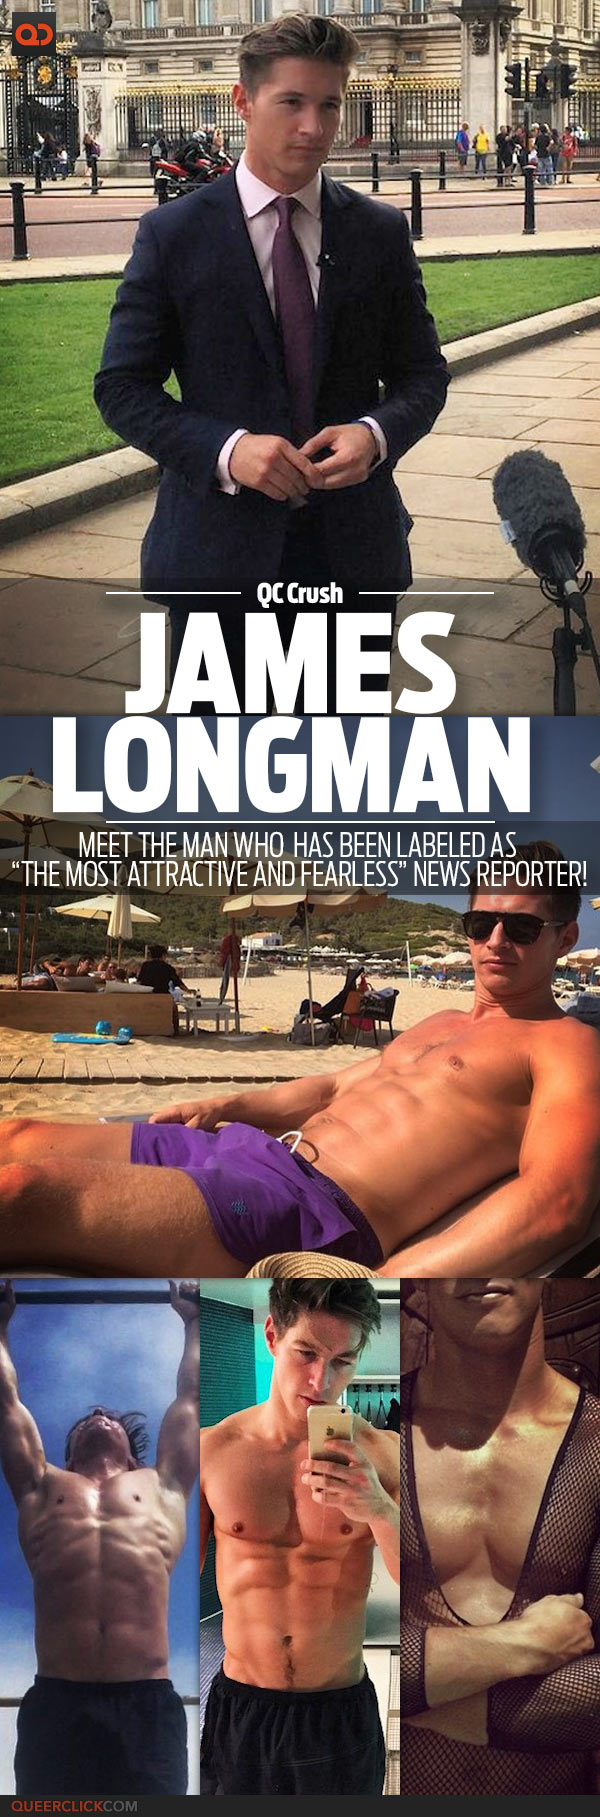 """QC Crush: James Longman - Meet The Man Who Has Been Labeled As """"The Most Attractive And Fearless"""" News Reporter!"""